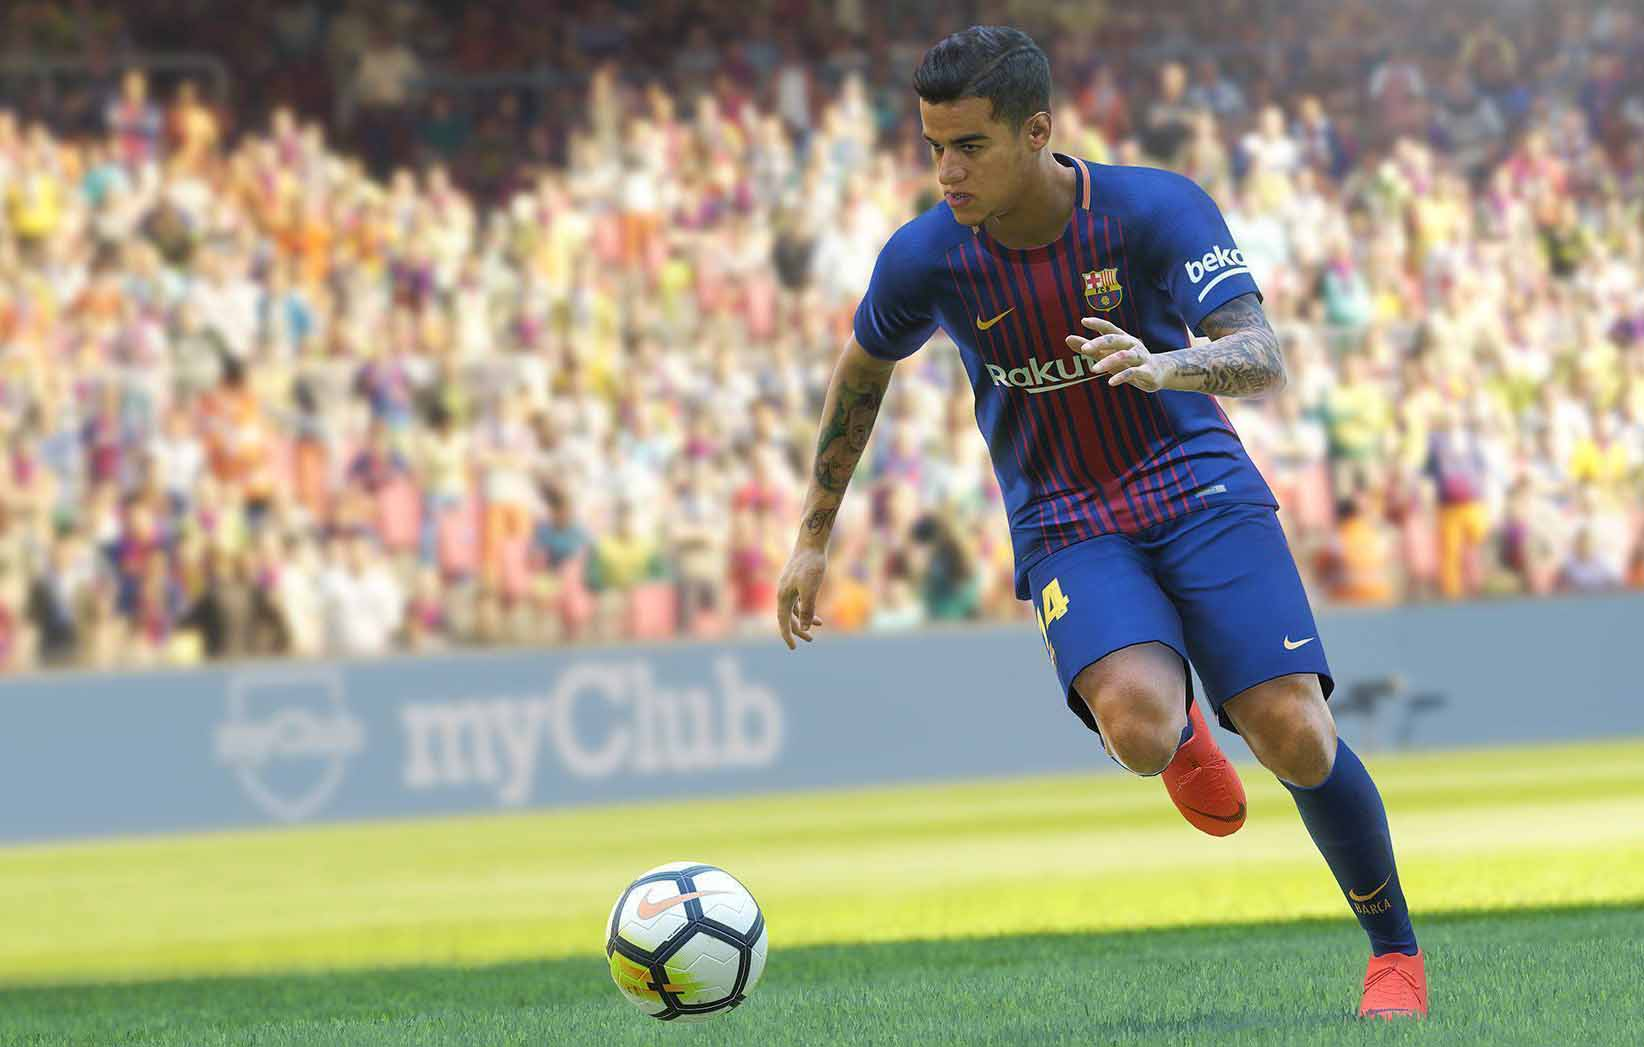 eFootball PES 2020 presenta sus requisitos para PC y no son nada exigentes